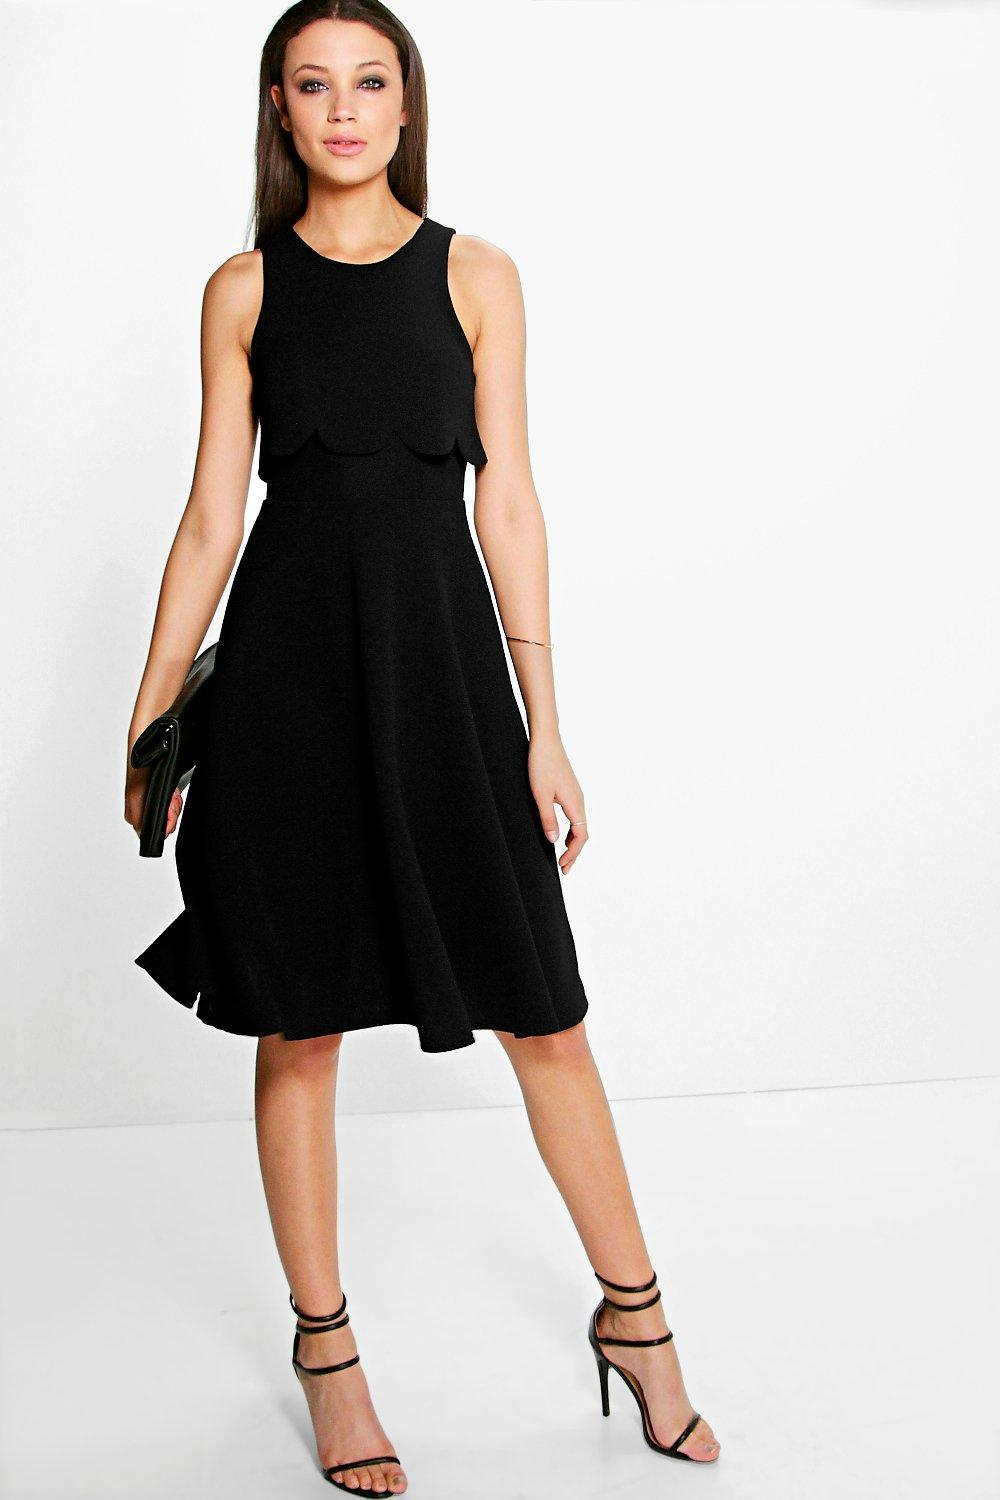 Double Layer Scallop Midi Skater Dress Black - pattern: plain; sleeve style: sleeveless; bust detail: subtle bust detail; predominant colour: black; occasions: evening; length: on the knee; fit: fitted at waist & bust; style: fit & flare; fibres: acrylic - 100%; neckline: crew; sleeve length: sleeveless; texture group: crepes; pattern type: fabric; season: s/s 2016; wardrobe: event